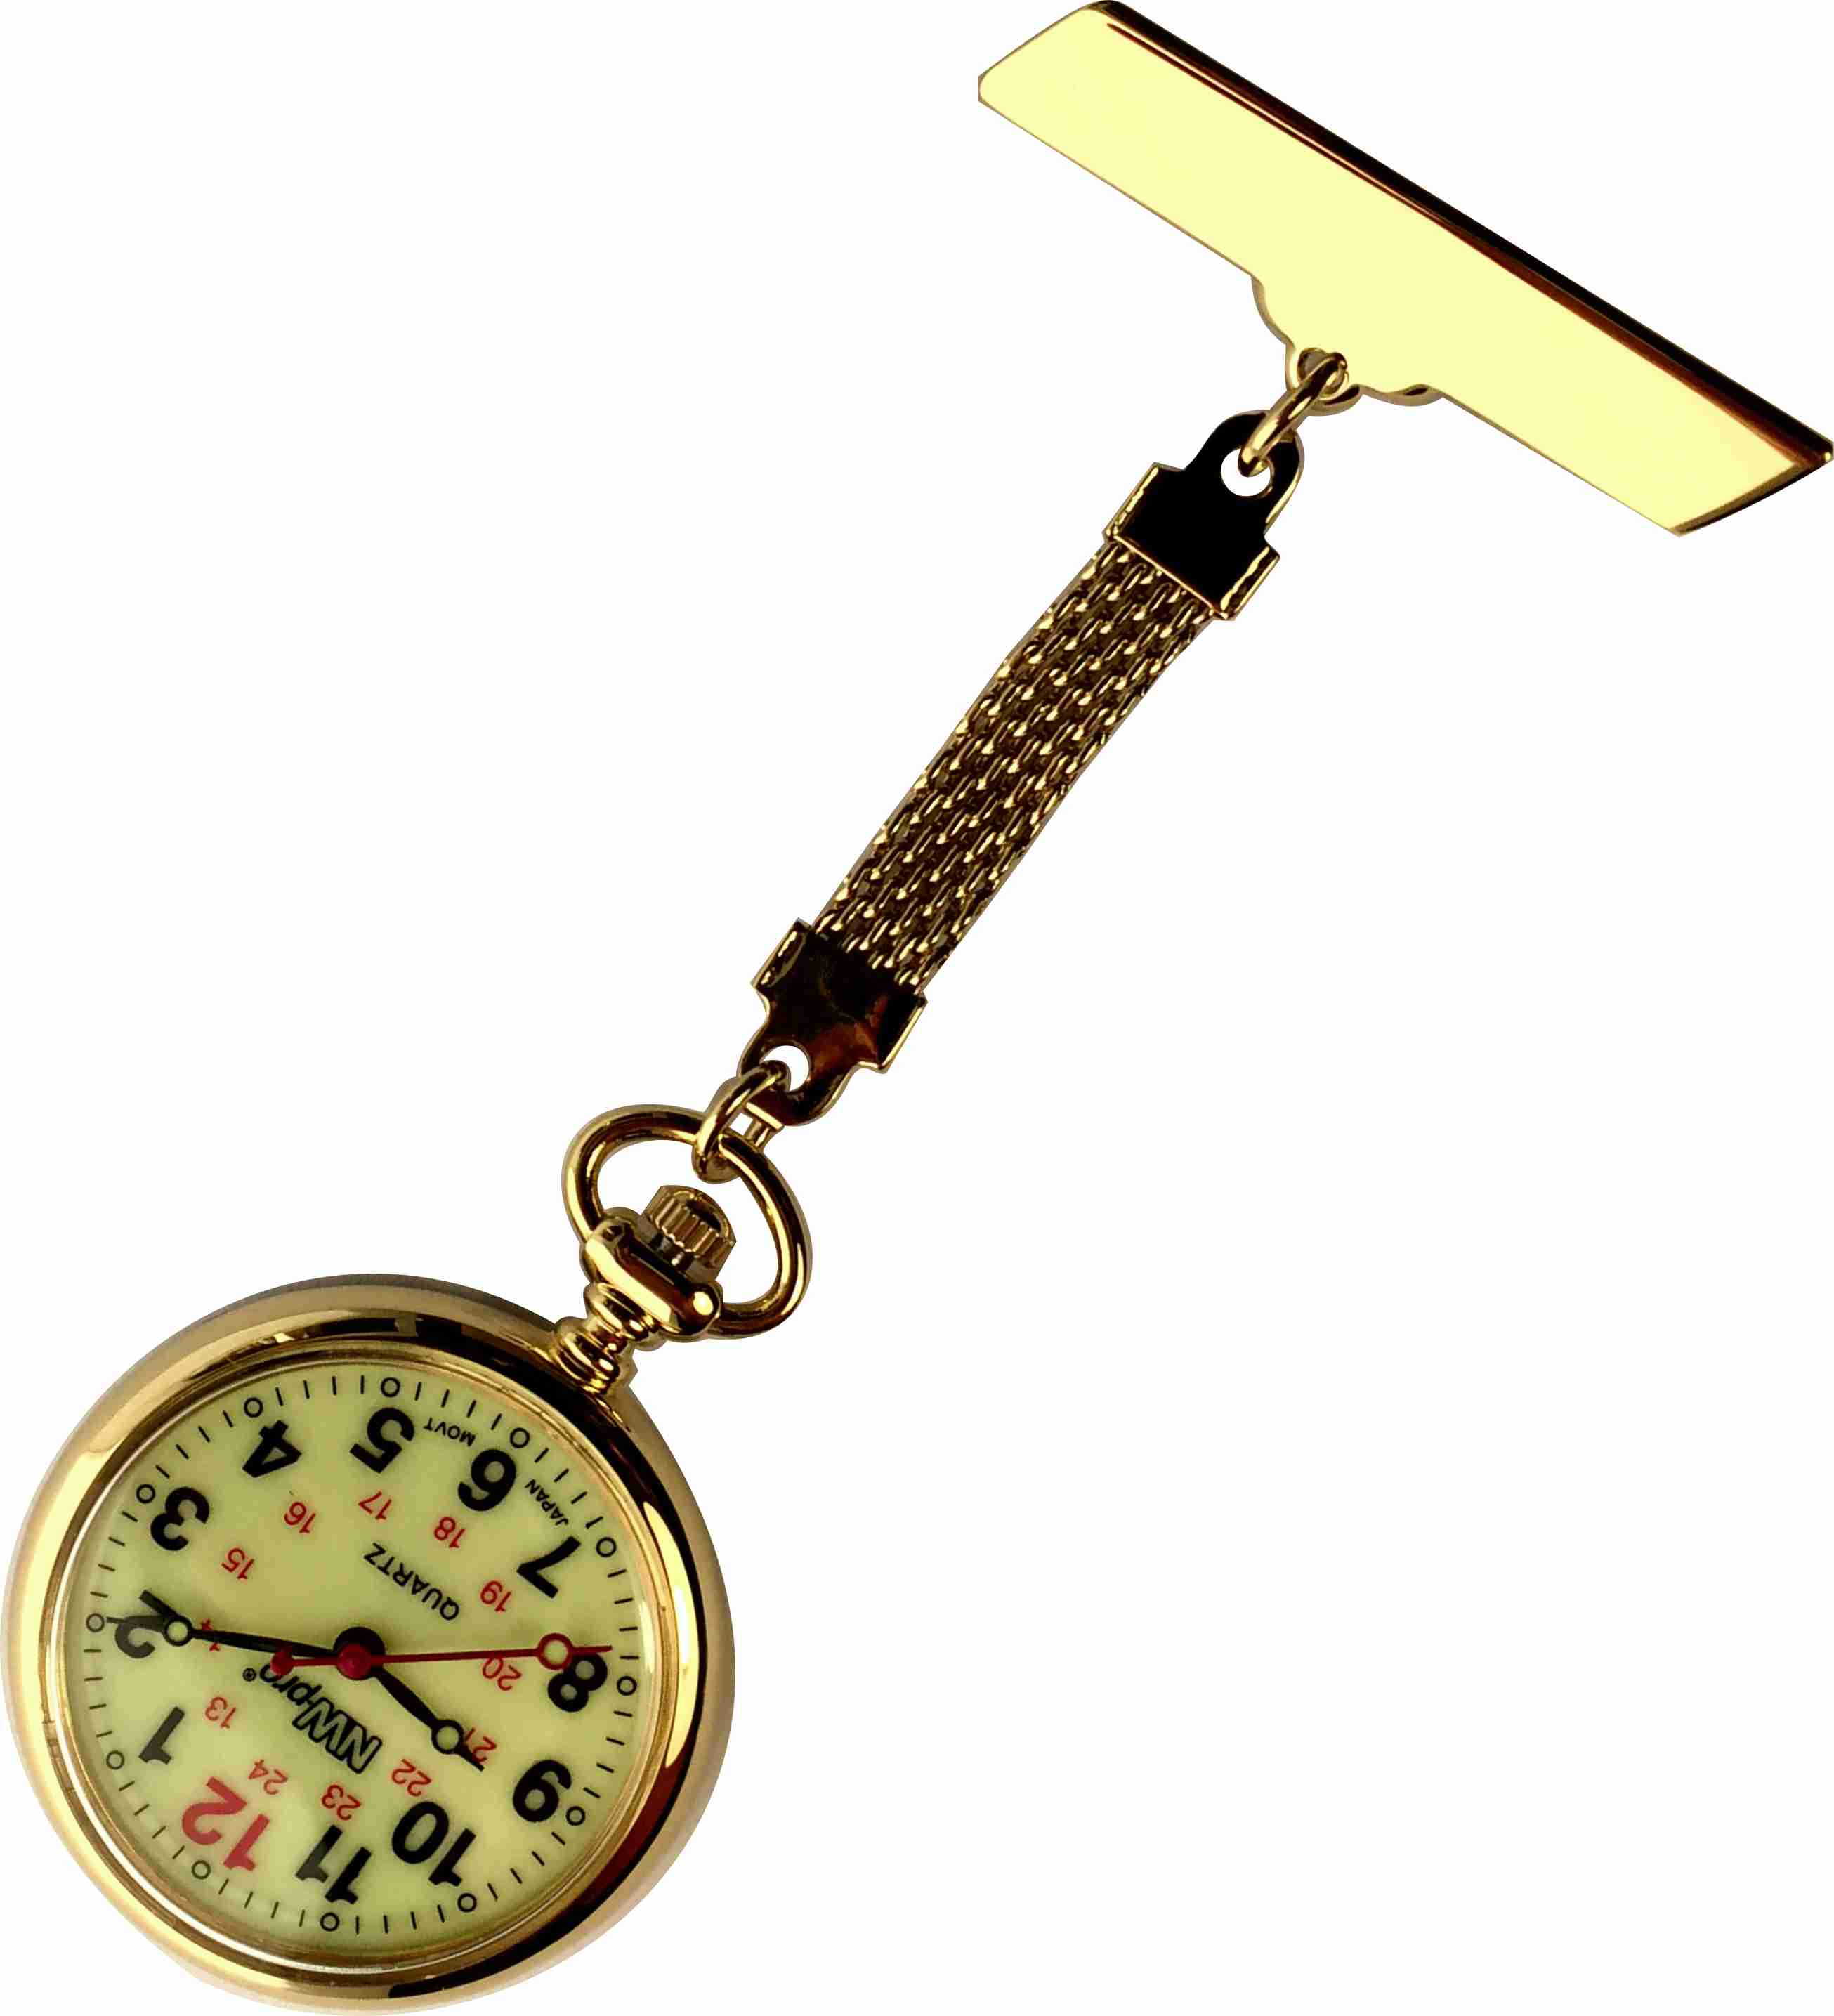 Nurses Pinned Watch - Nw-pro Braided - Gold - Luminous